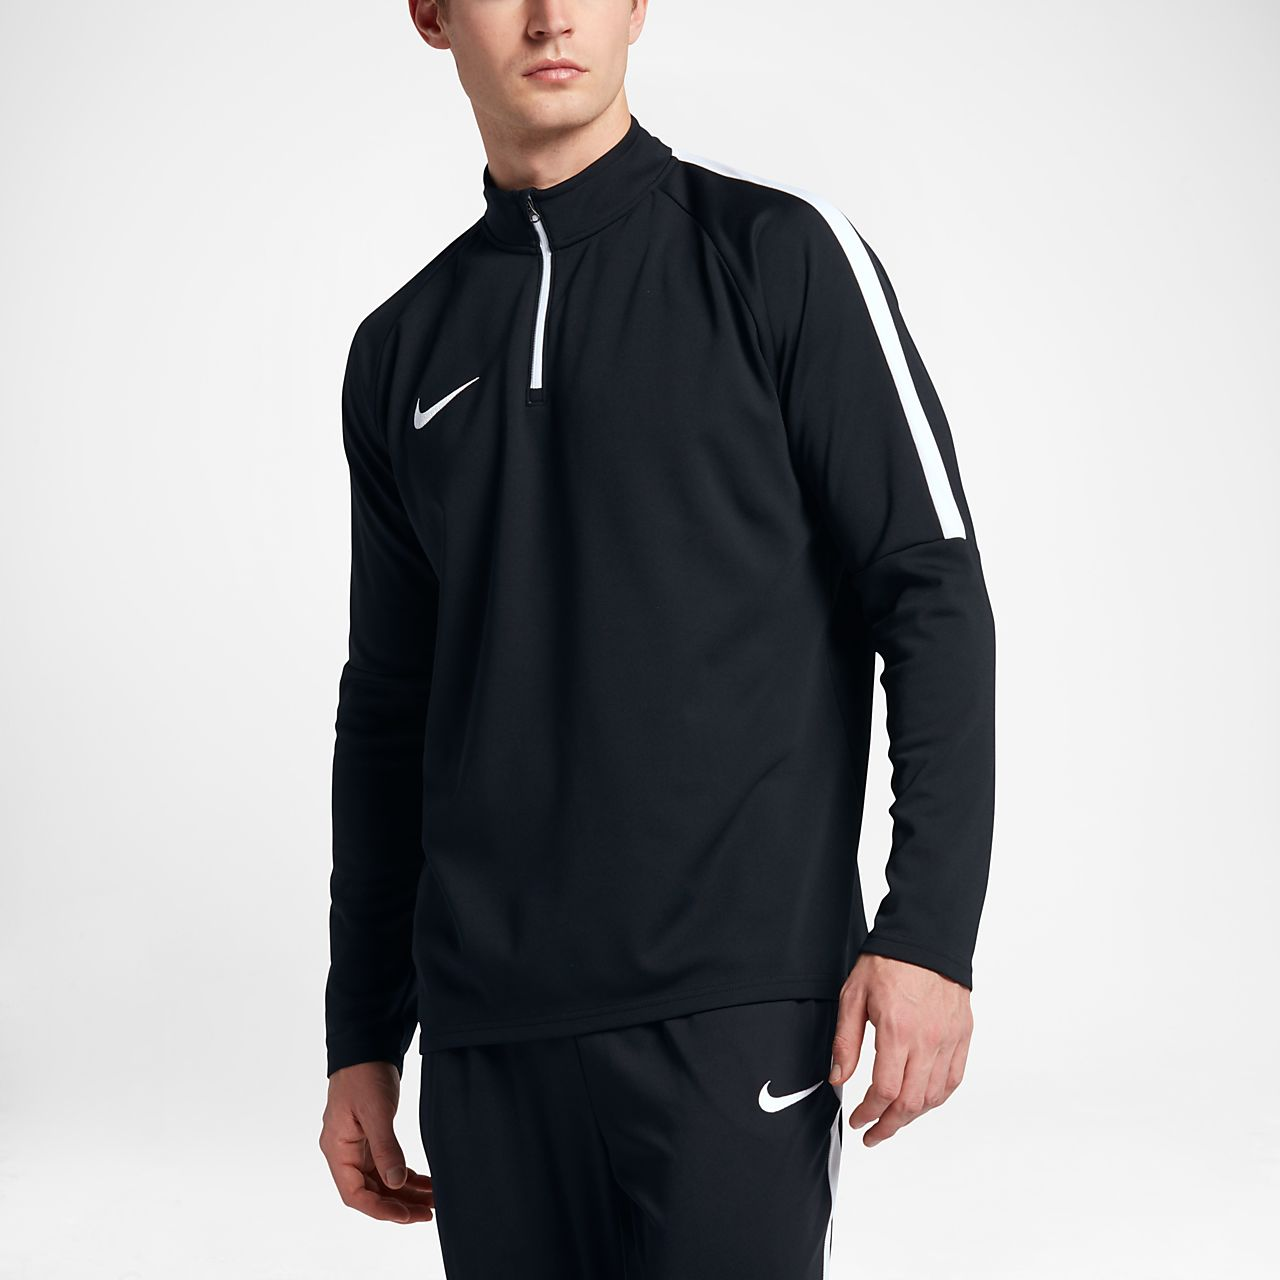 520c0704246b Nike Dri-FIT Academy Men s 1 4 Zip Soccer Drill Top. Nike.com